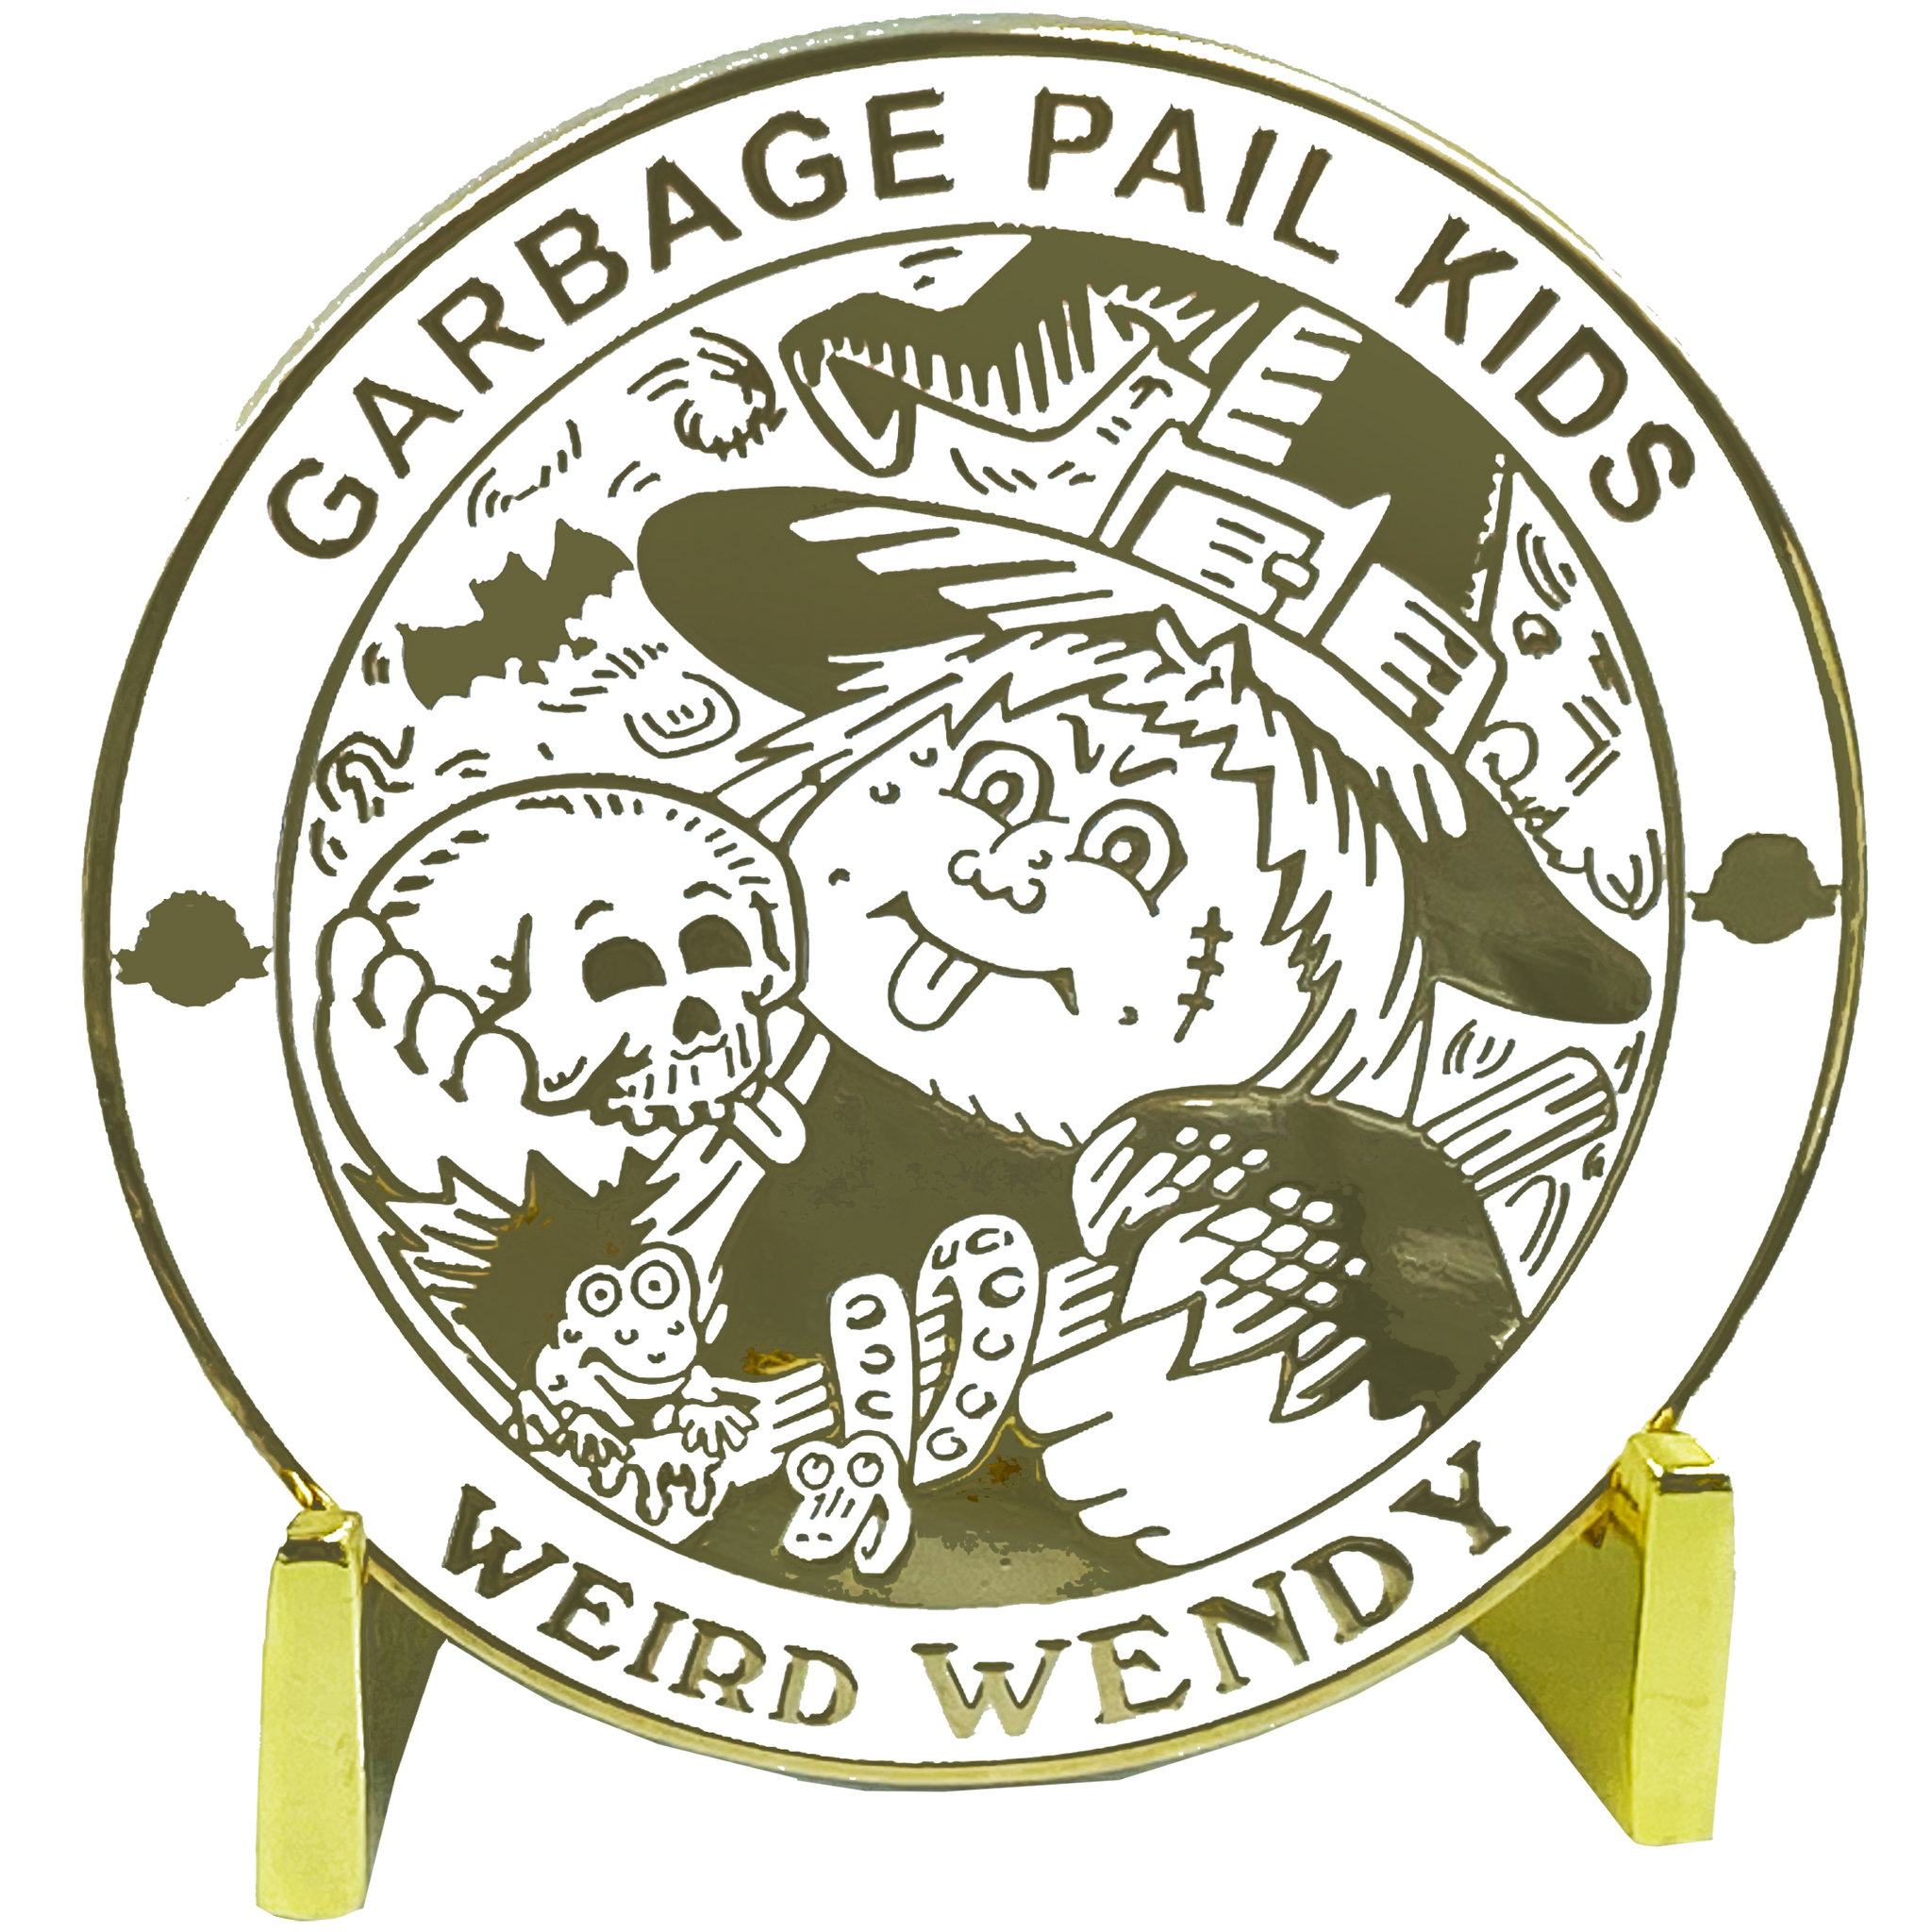 GPK-CC-002 WEIRD WENDY Topps Officially Licensed David Gross Artist Collaboration GPK Challenge Coin Garbage Pail Kids